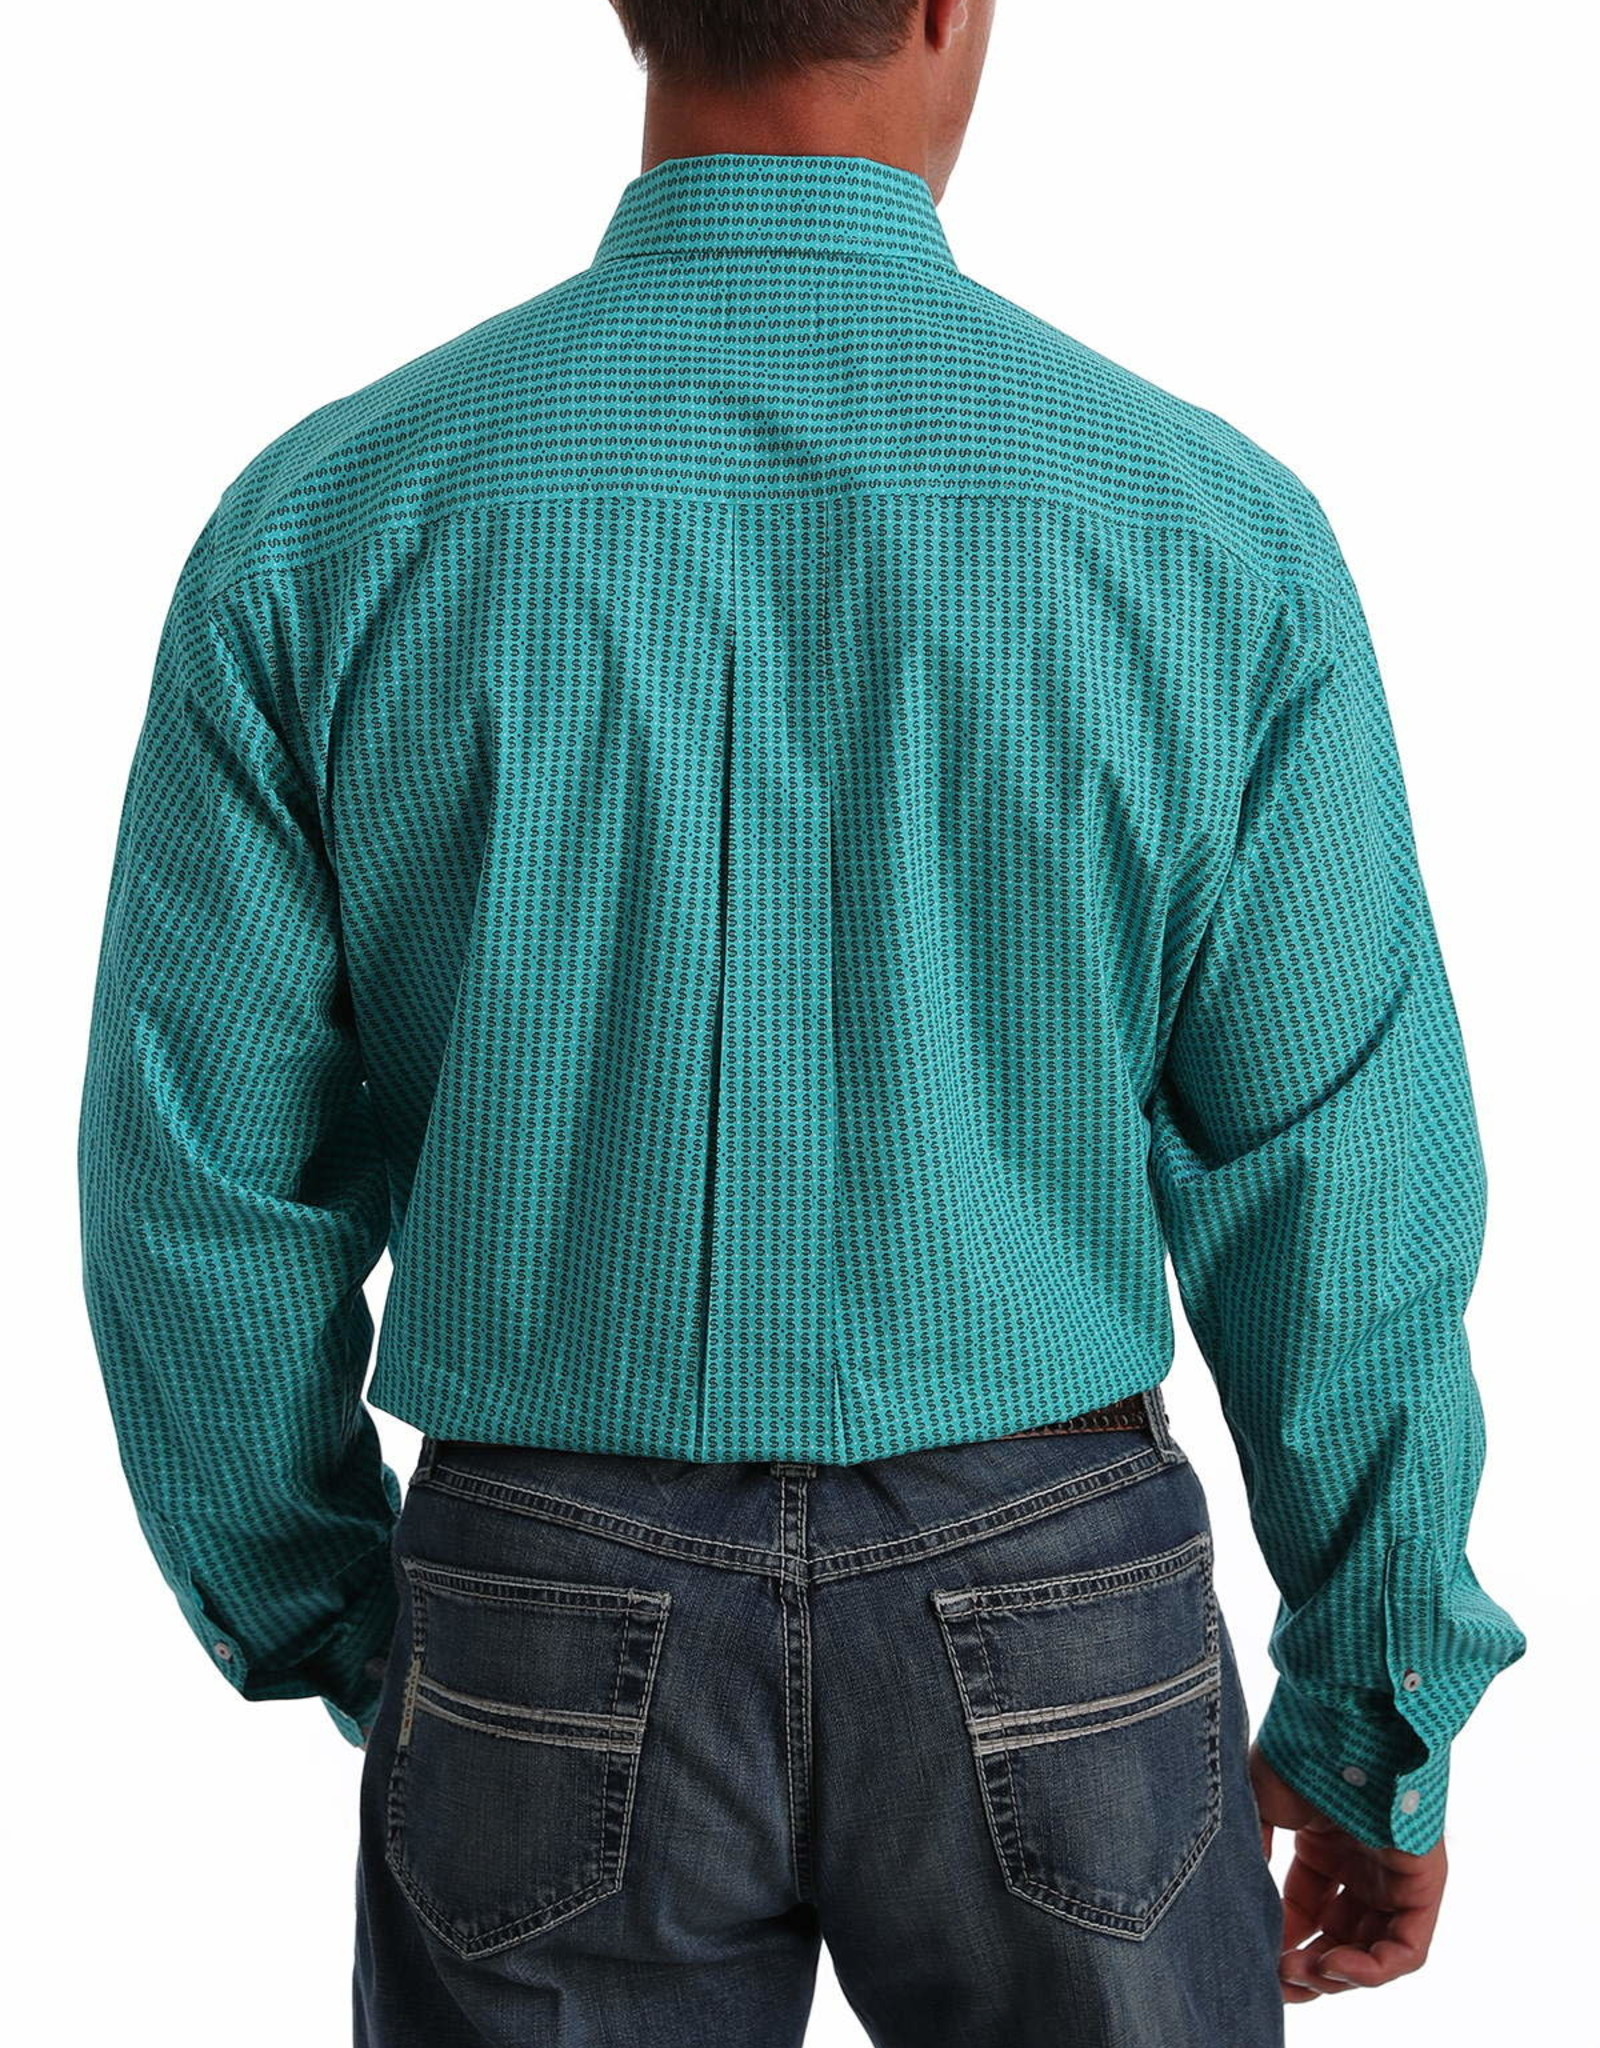 Cinch Mens Cinch Long Sleeve Turquoise Dollar Sign Print Shirt